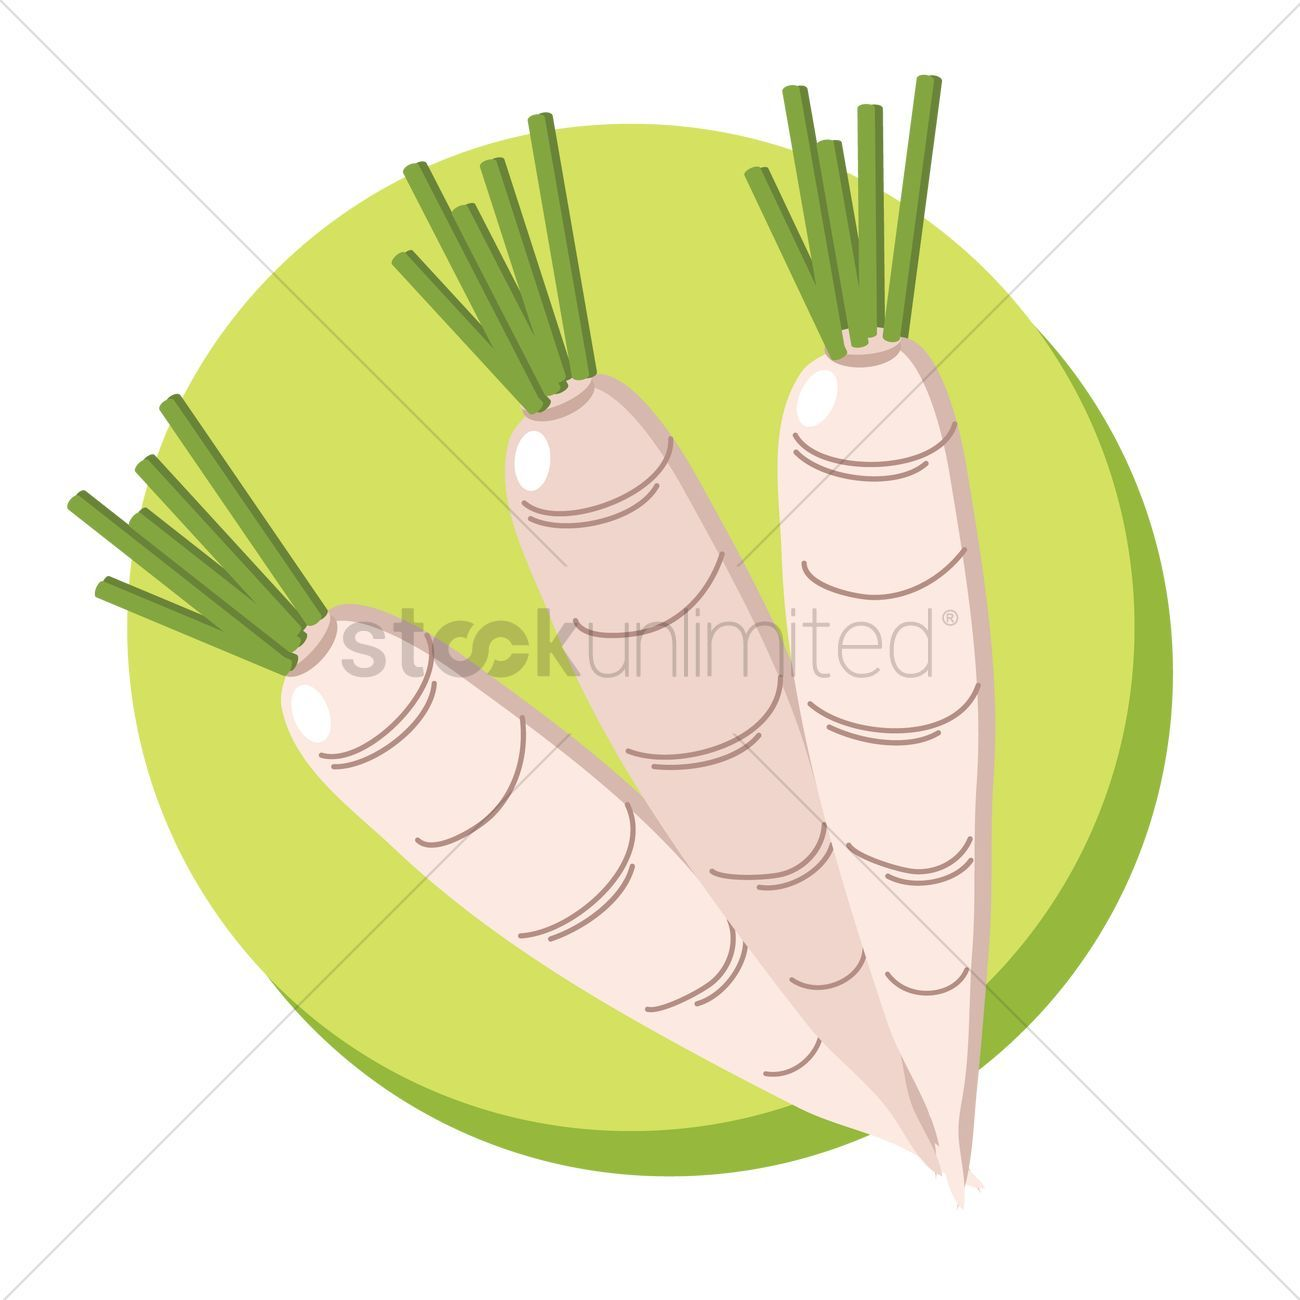 You Don't Have To Be A Designer To Get Awesome Visuals White carrots vectors, stock clipart ,